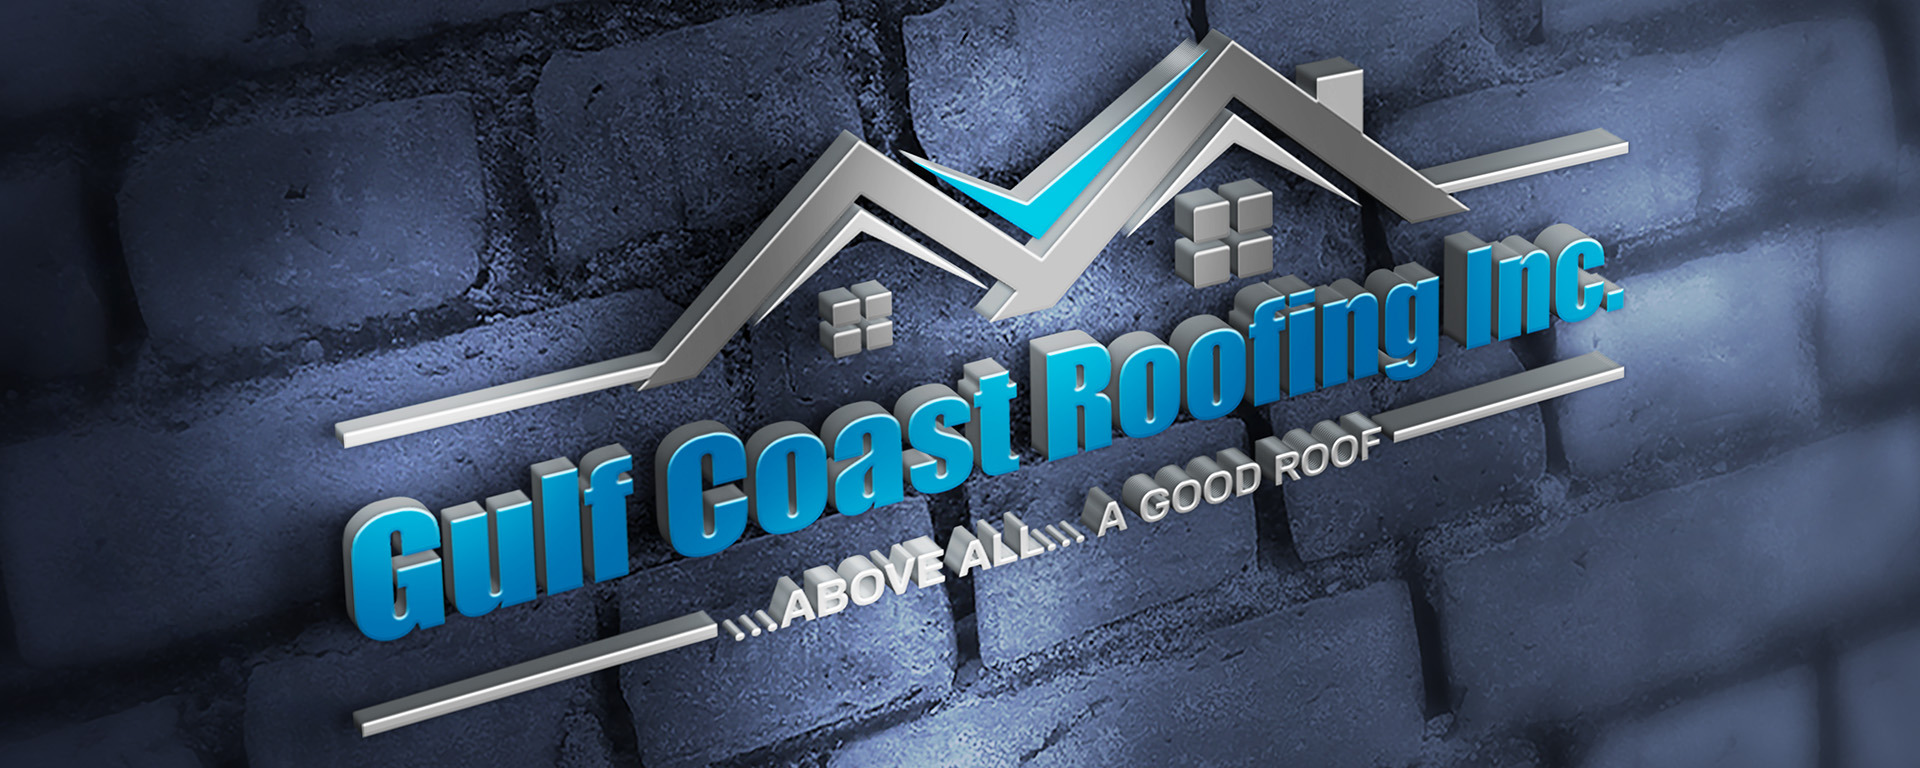 Gulf Coast Roofing Inc.